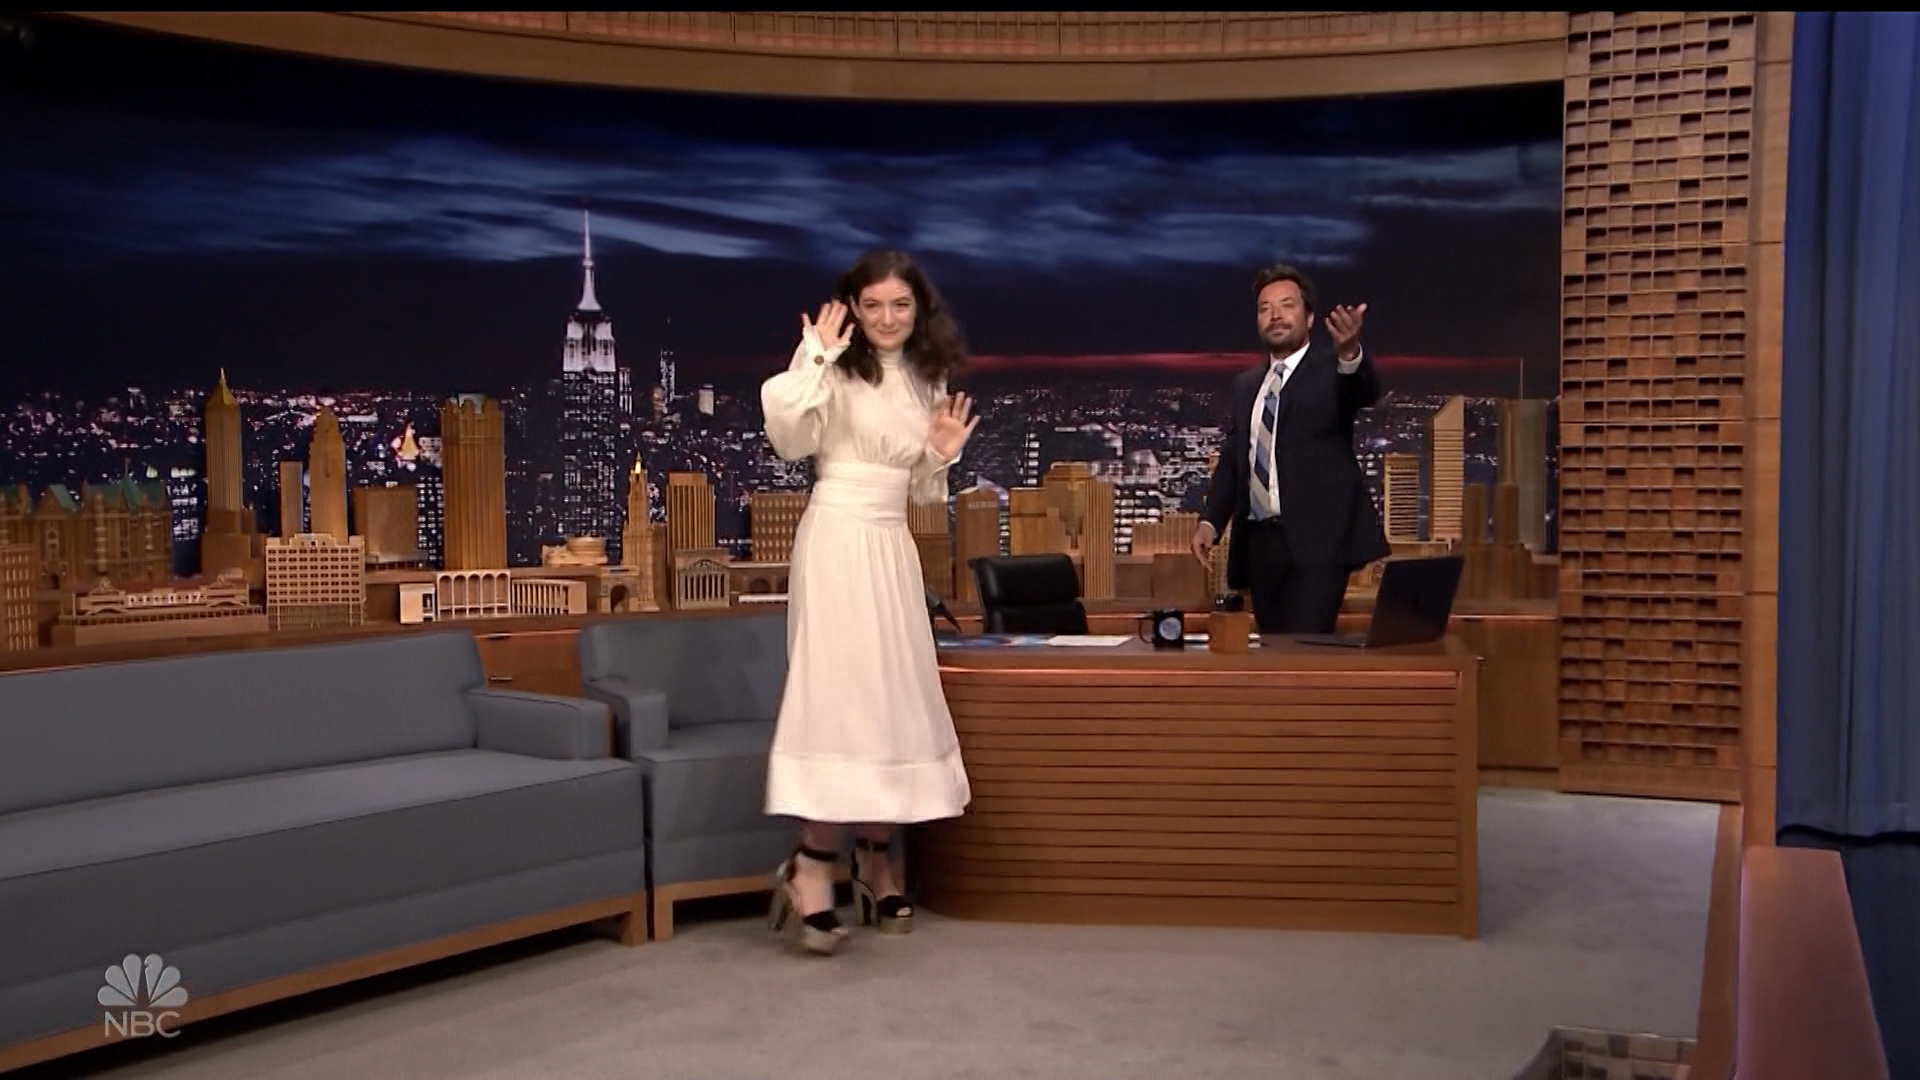 Lorde_-_Jimmy_Fallon_720p_2017_06_15.00_00_21_05.Still002.jpg